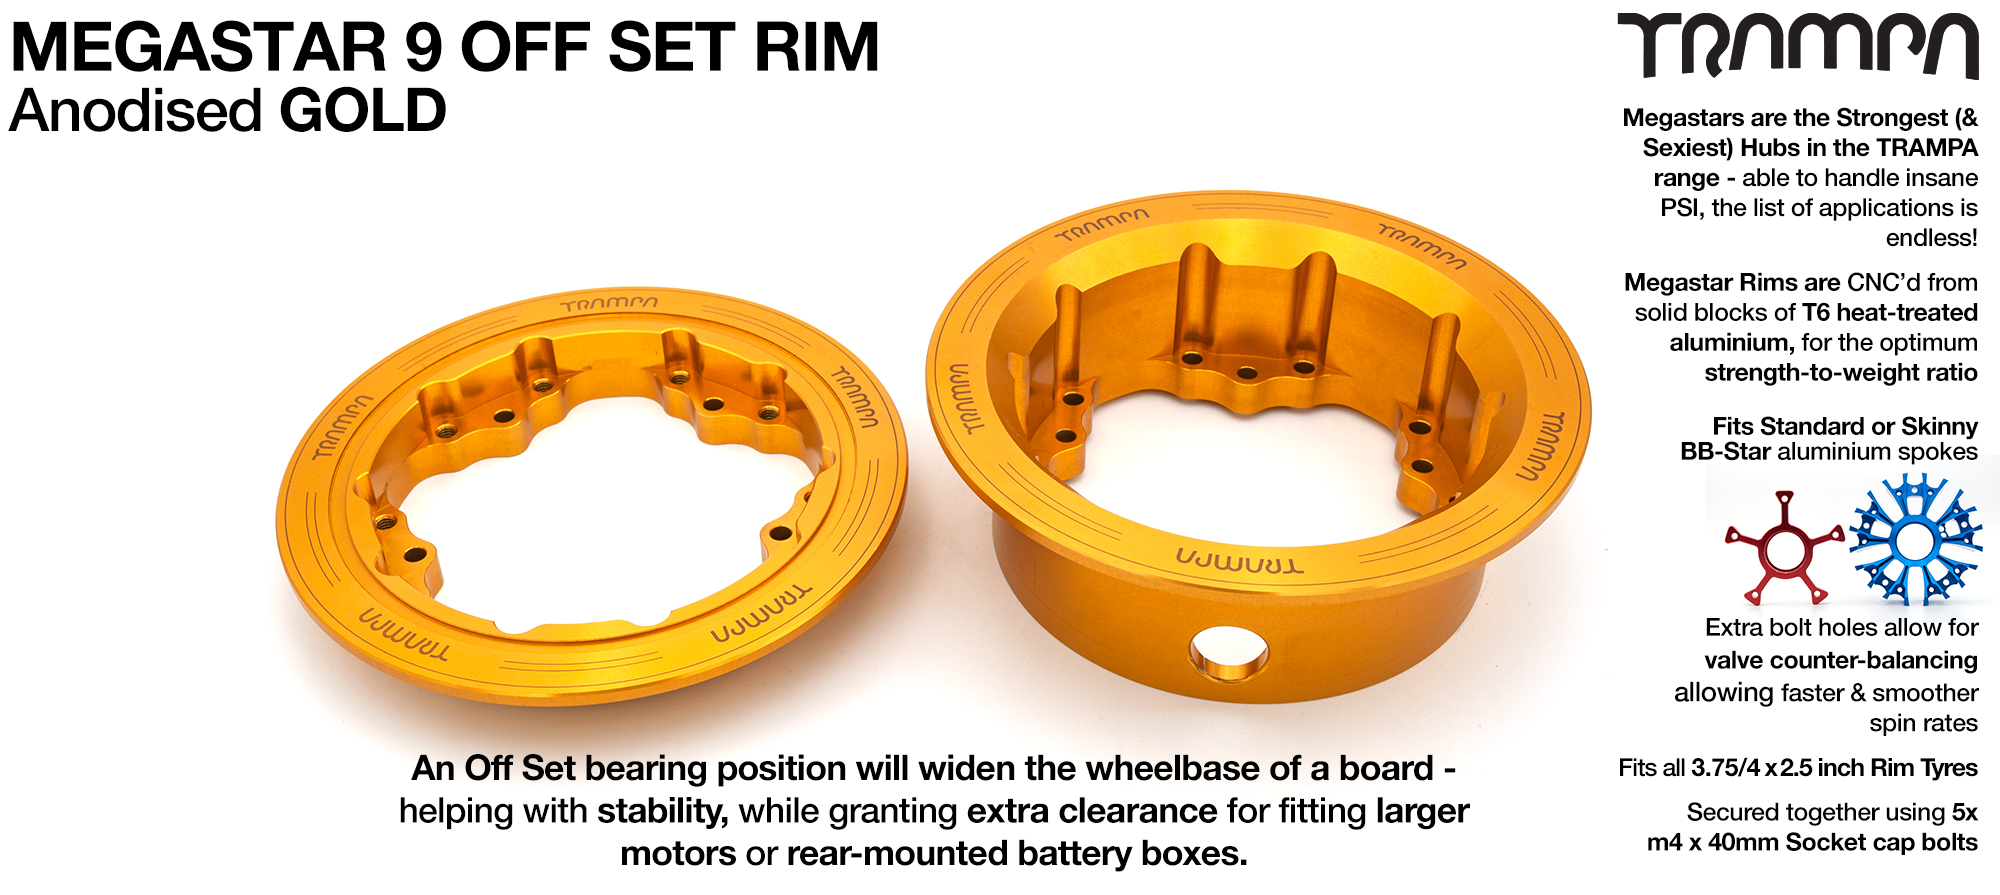 9 Inch DEEP DISH Off-Set MEGASTAR Rims GOLD - Place two on the rear of your Electric Mountainboard for extra Grip & Top Speed!